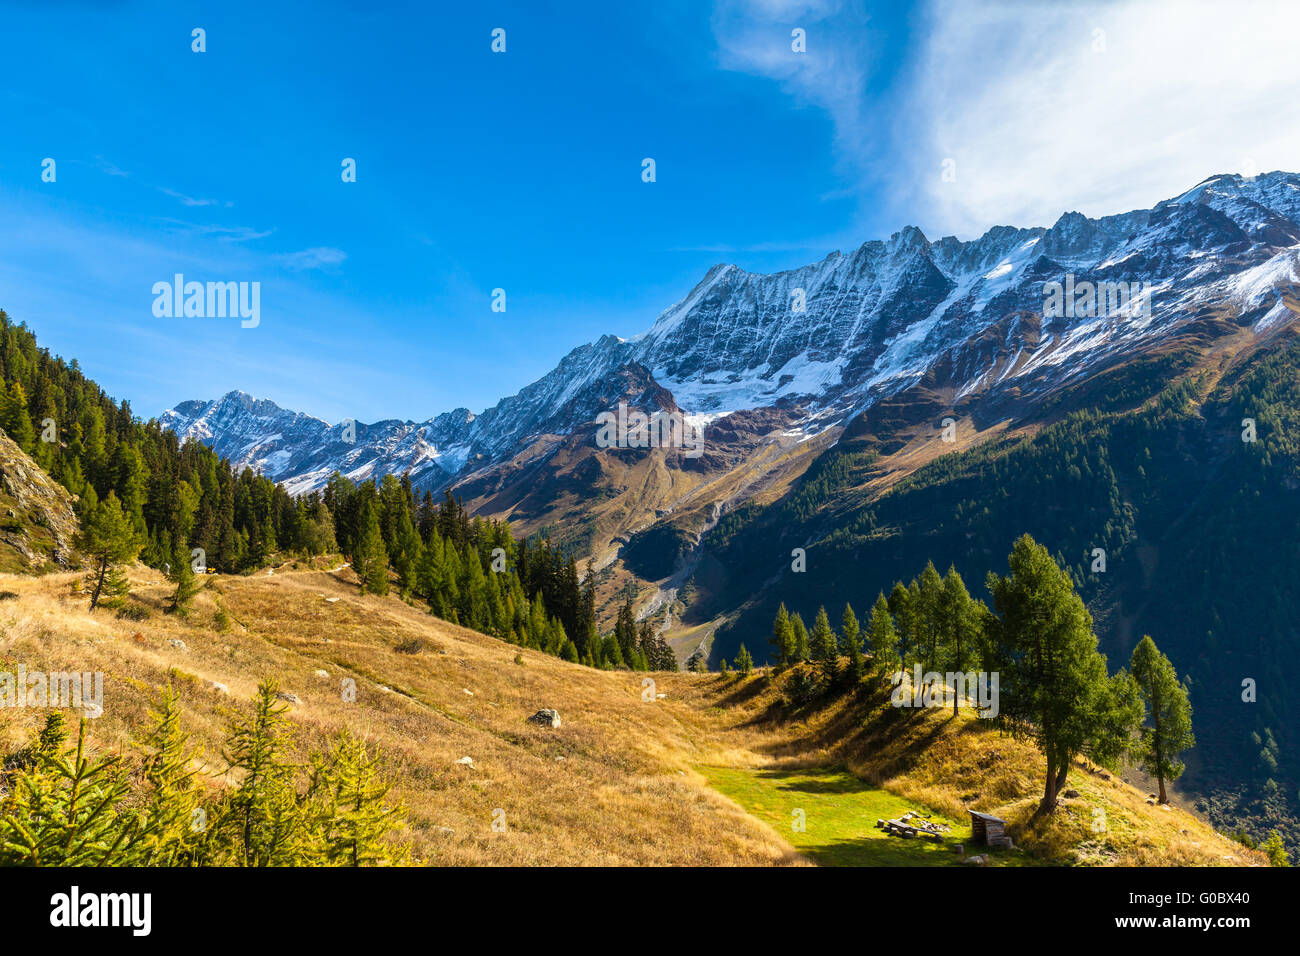 Stunning view of the Bietschhorn Breithorn and mountain range of alps in canton of Valais from the hiking path above - Stock Image